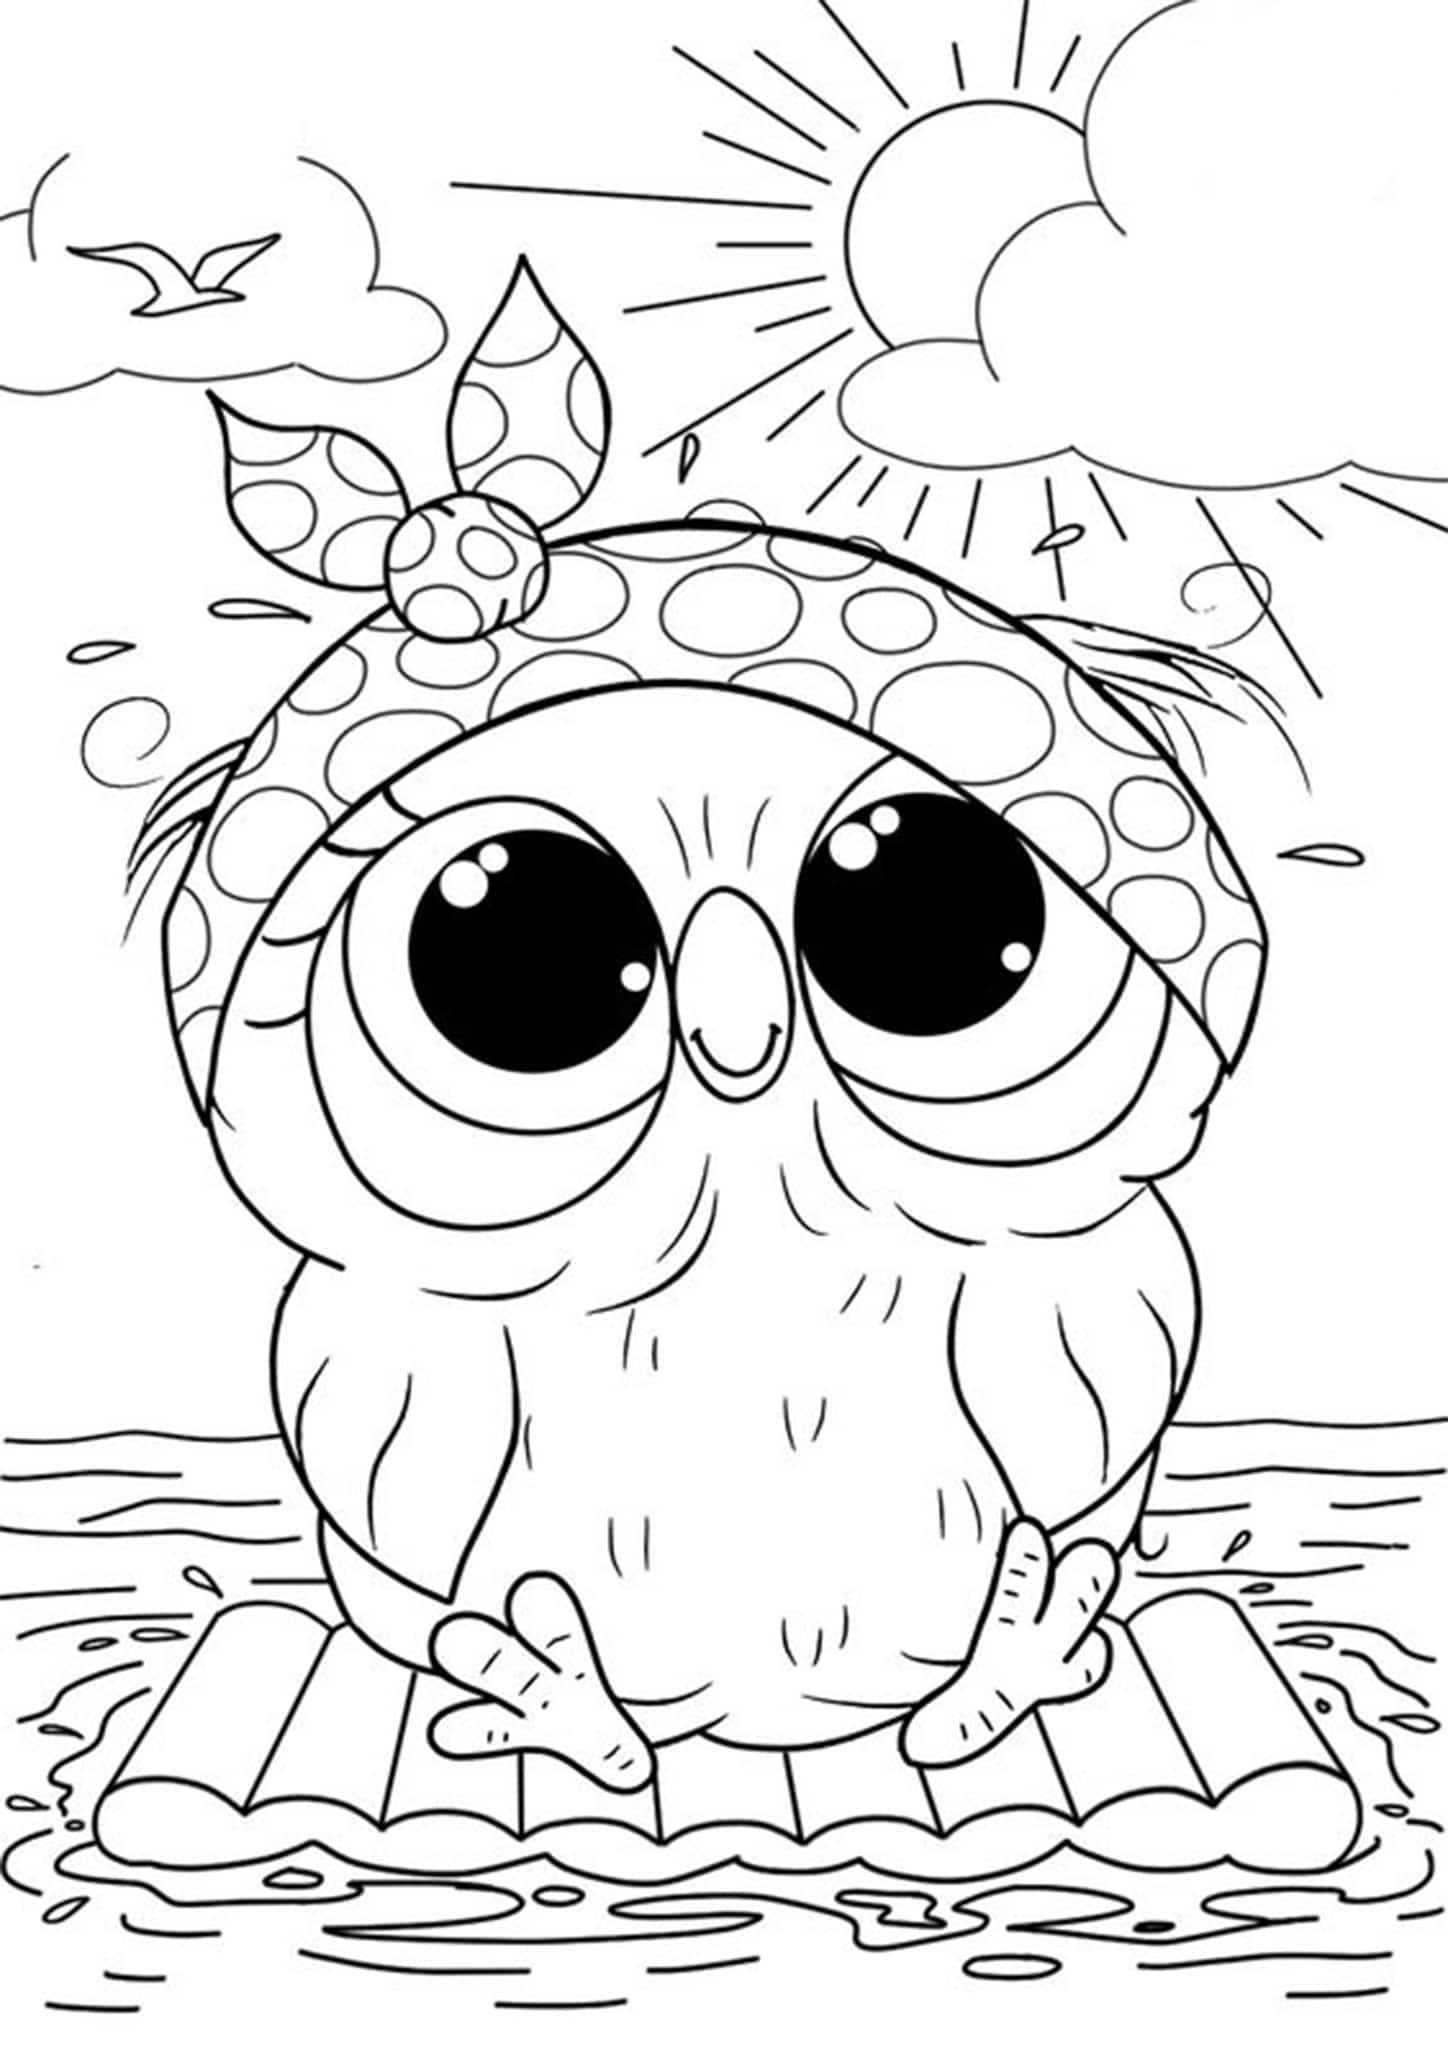 coloring picture of an owl baby owl coloring pages getcoloringpagescom an coloring owl of picture